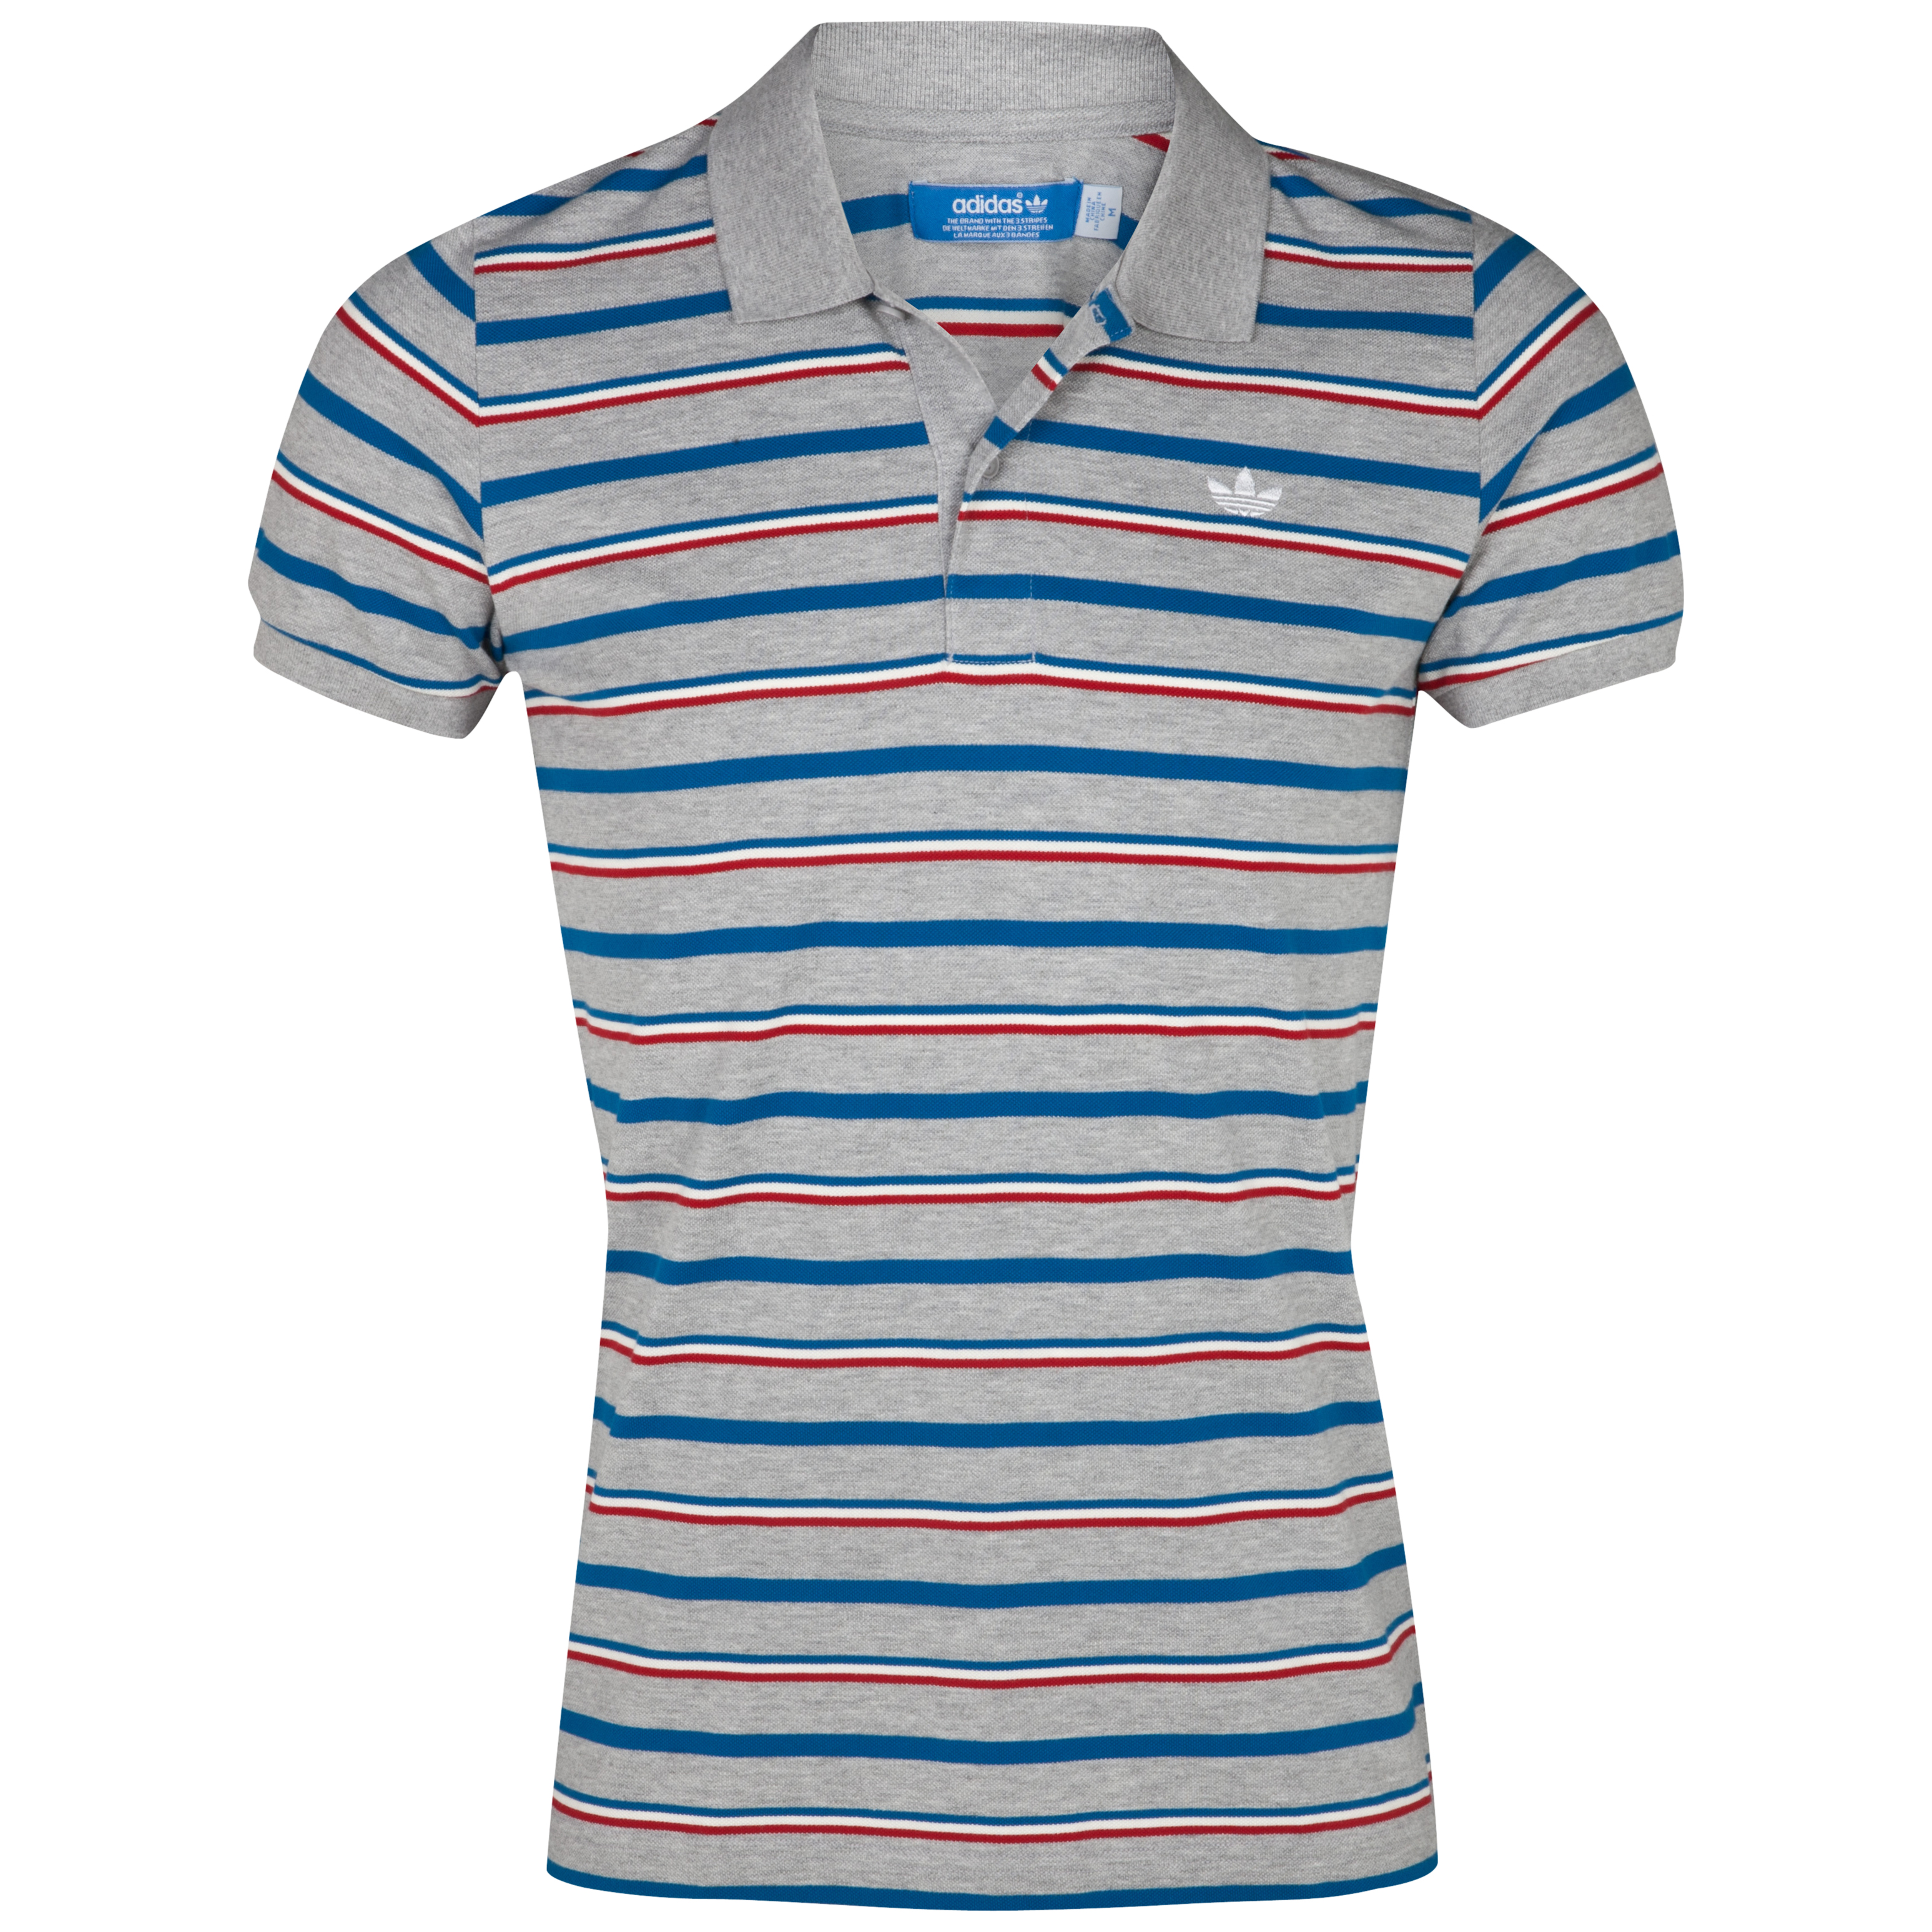 Originals Striped Polo - Medium Grey Heather